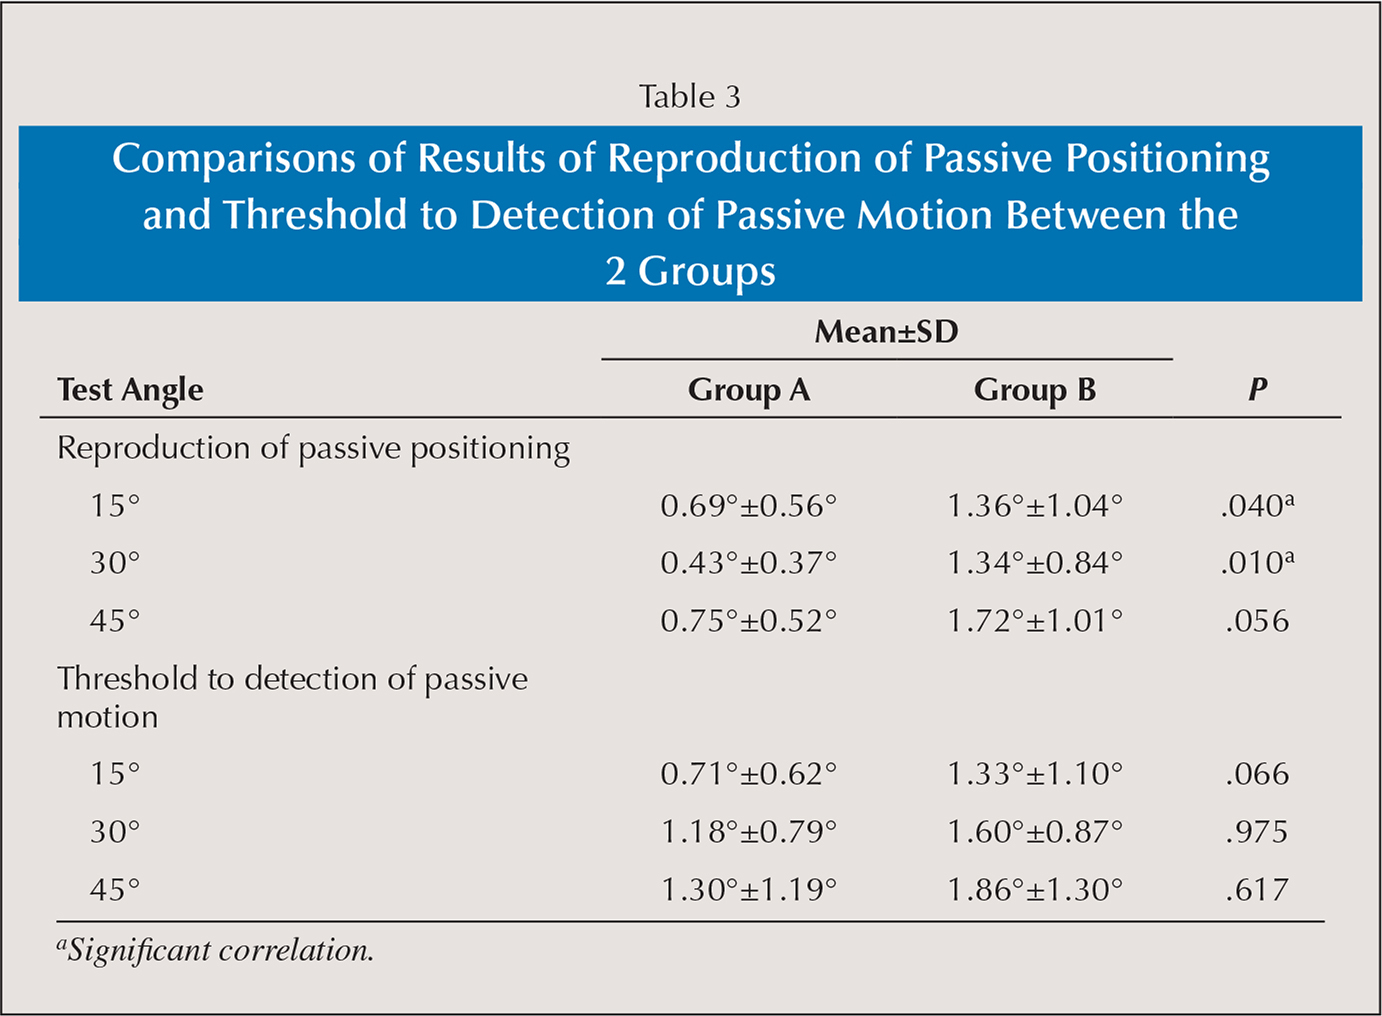 Comparisons of Results of Reproduction of Passive Positioning and Threshold to Detection of Passive Motion Between the 2 Groups